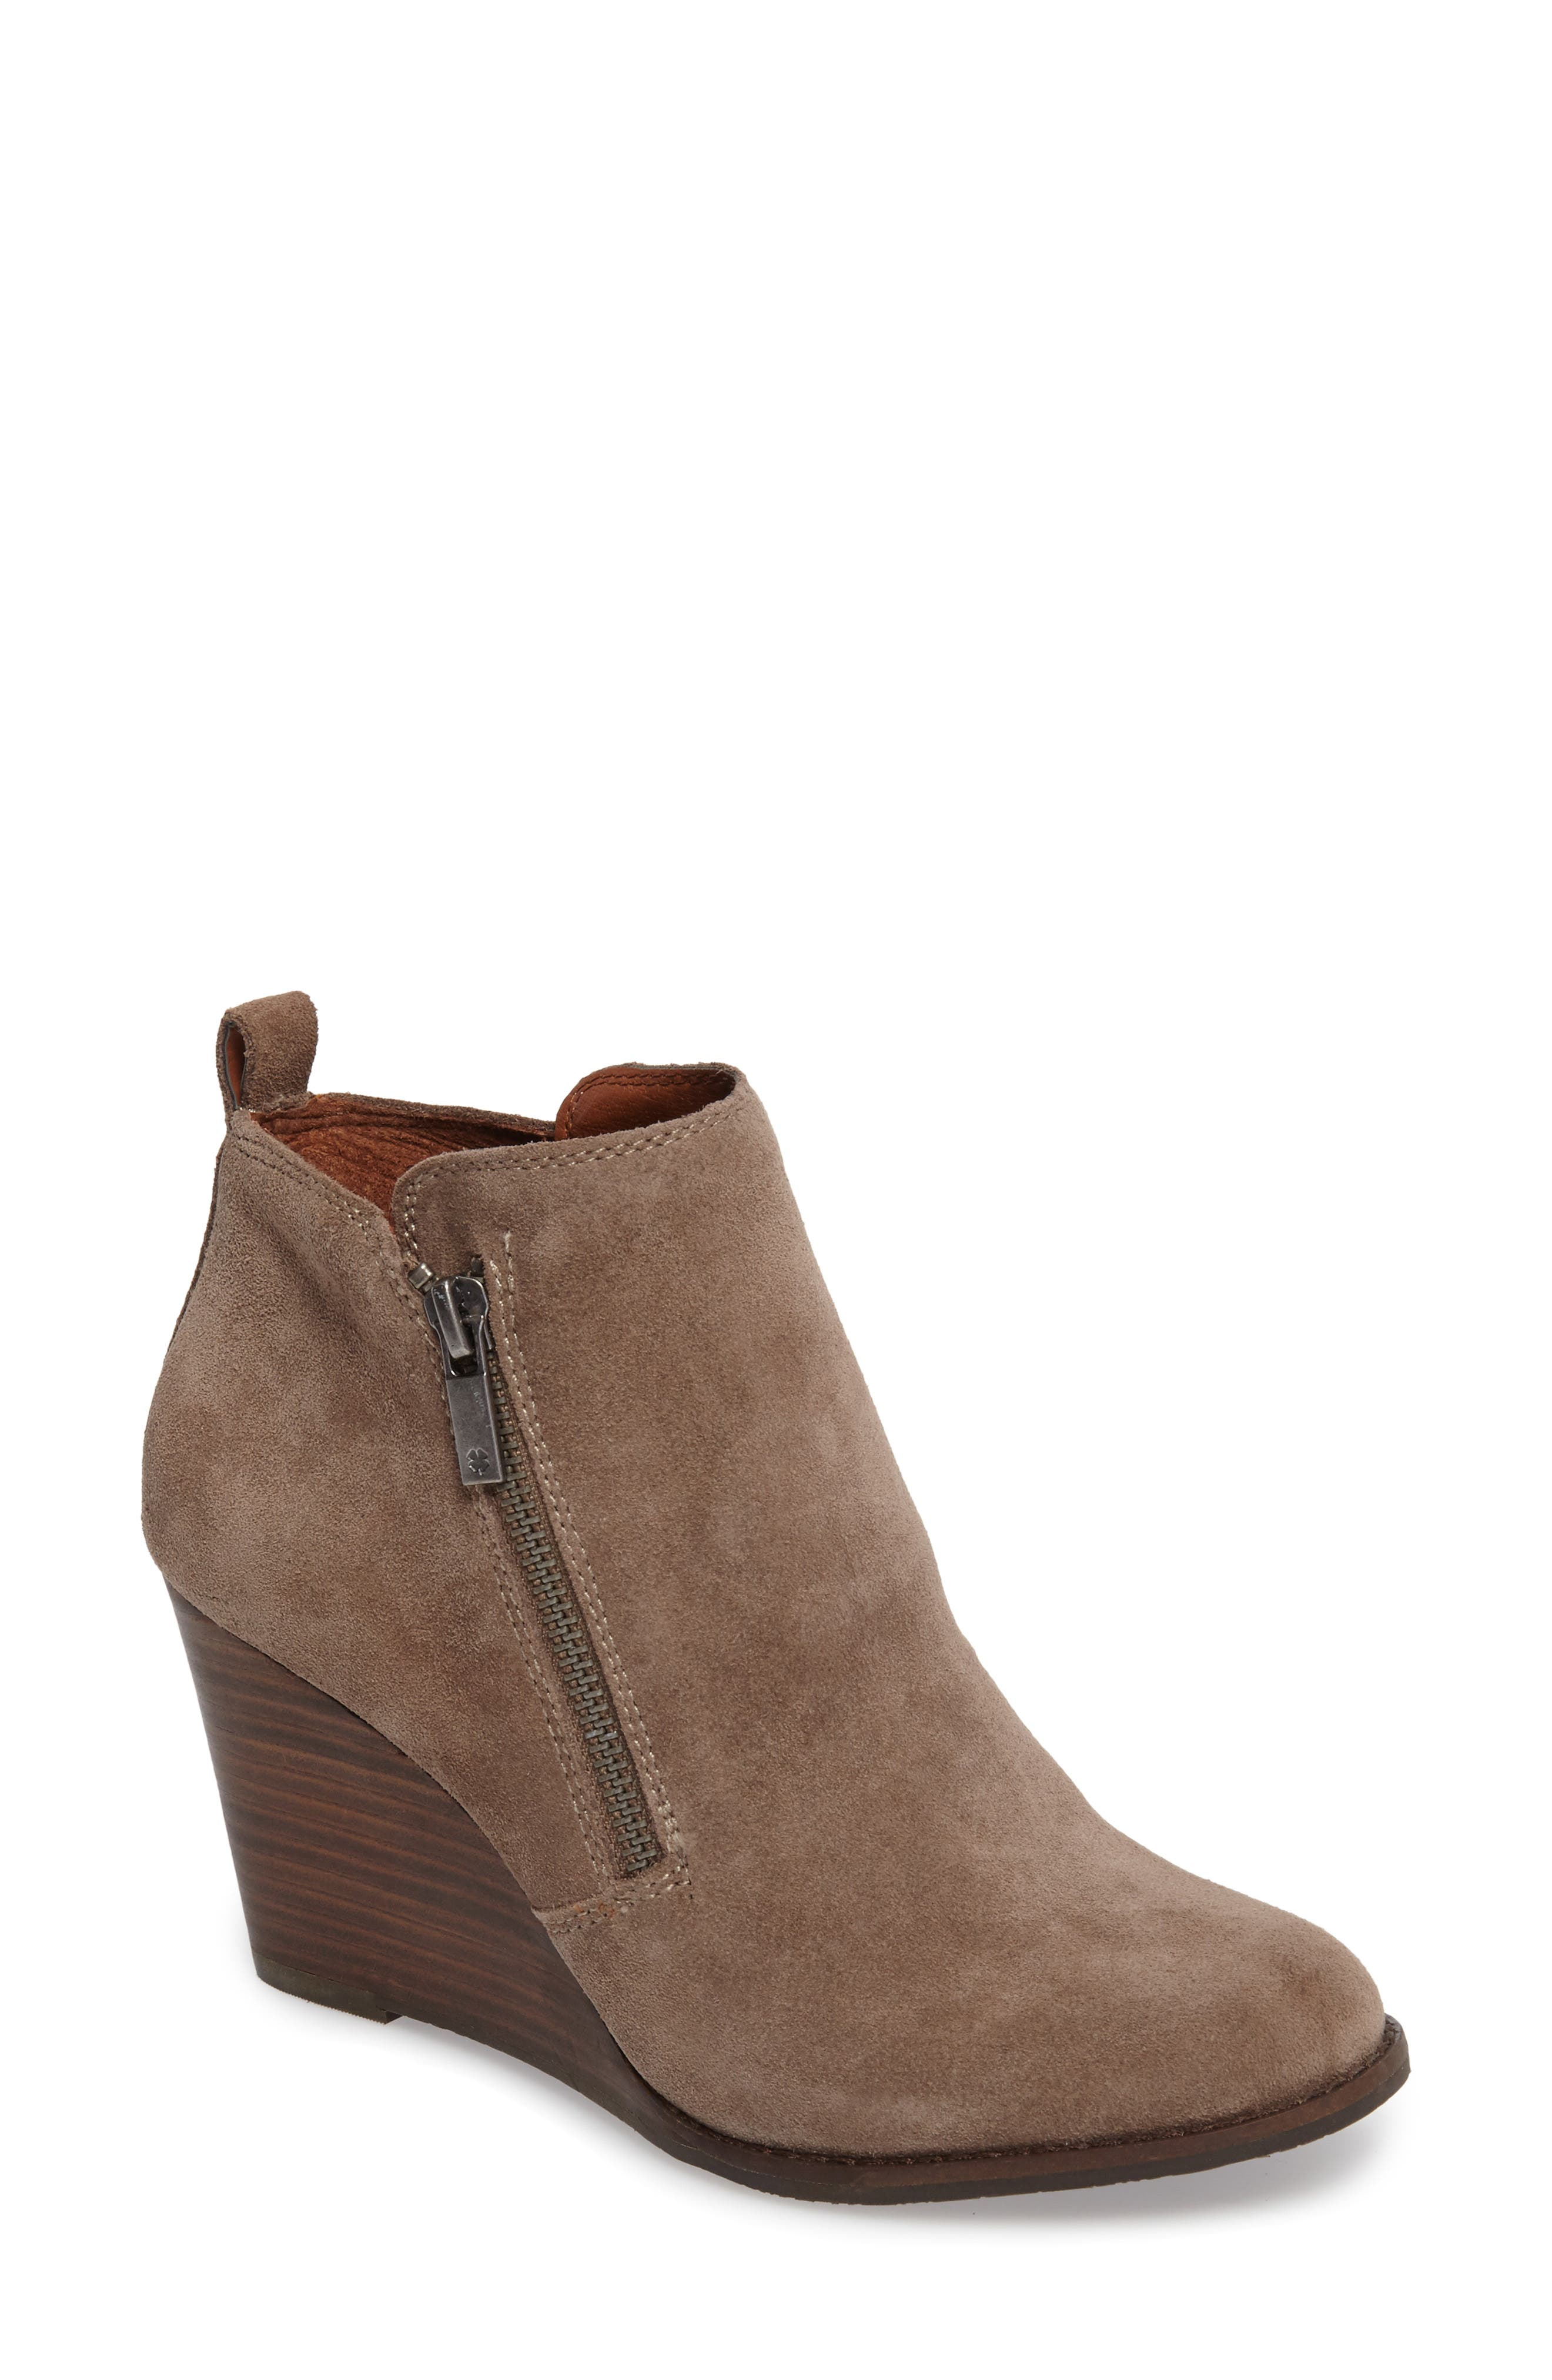 Main Image - Lucky Brand Yesterr Wedge Bootie (Women)